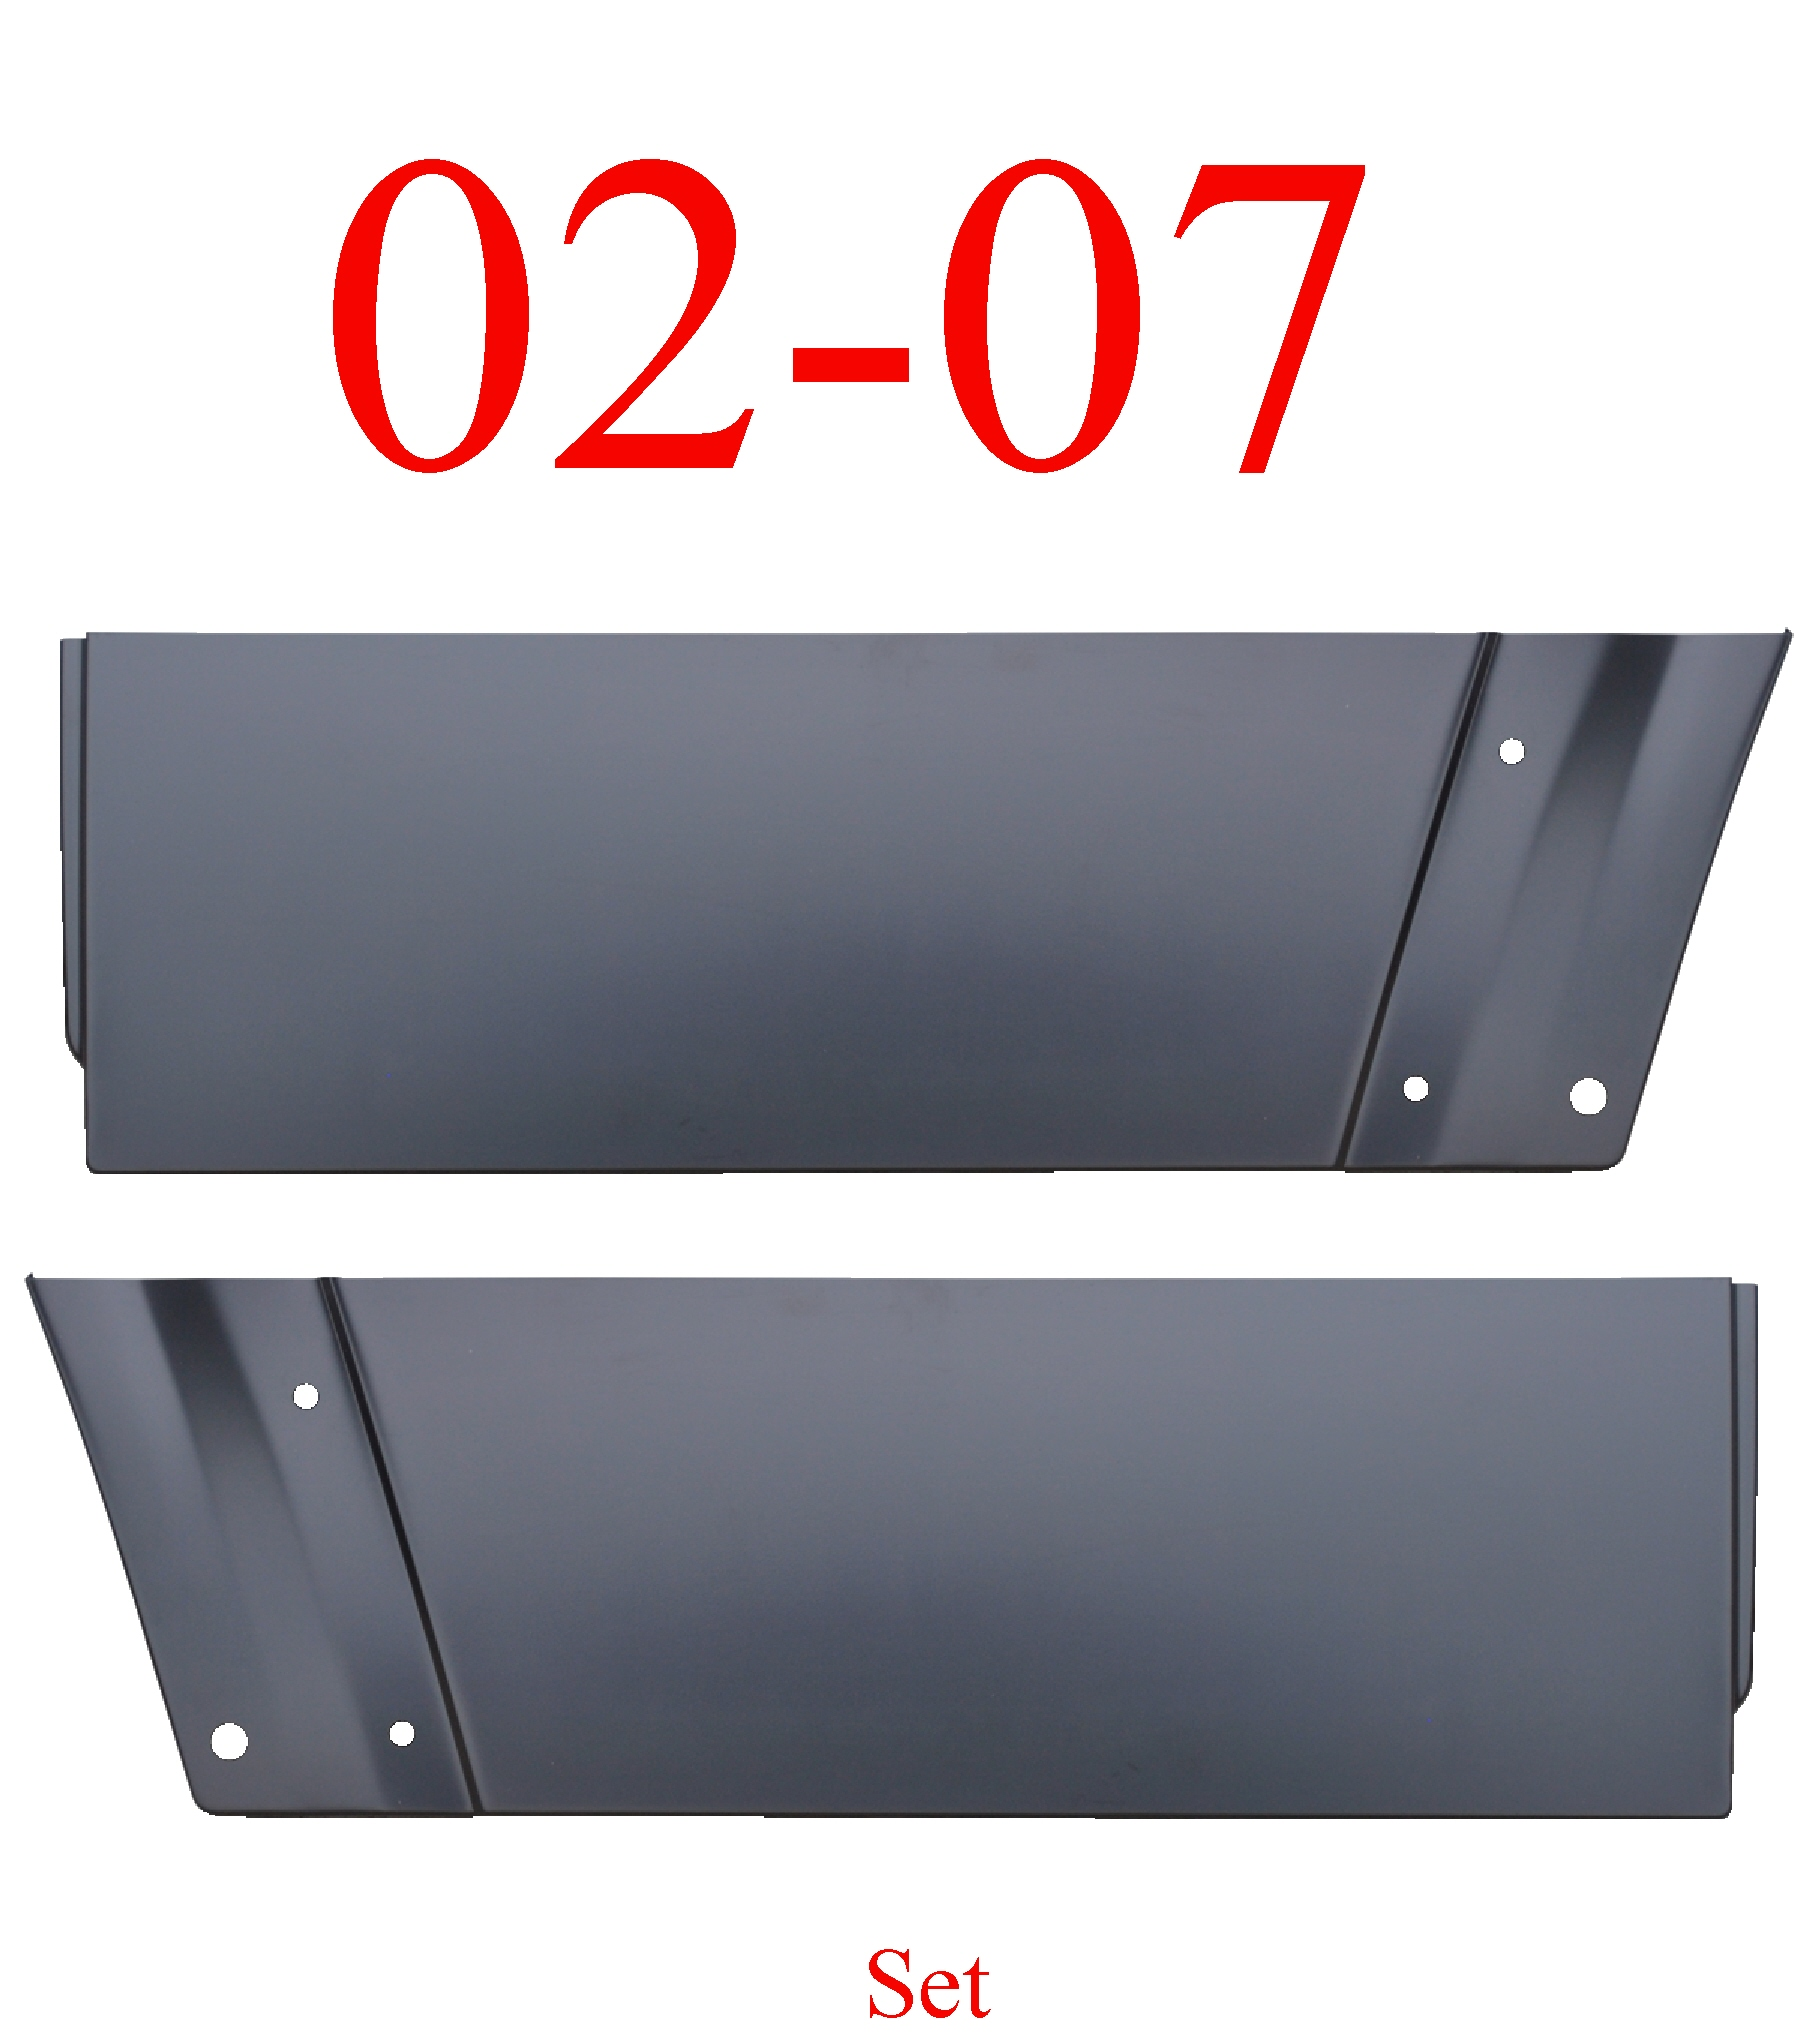 02-07 Jeep Liberty Rear Lower Door Skin Set